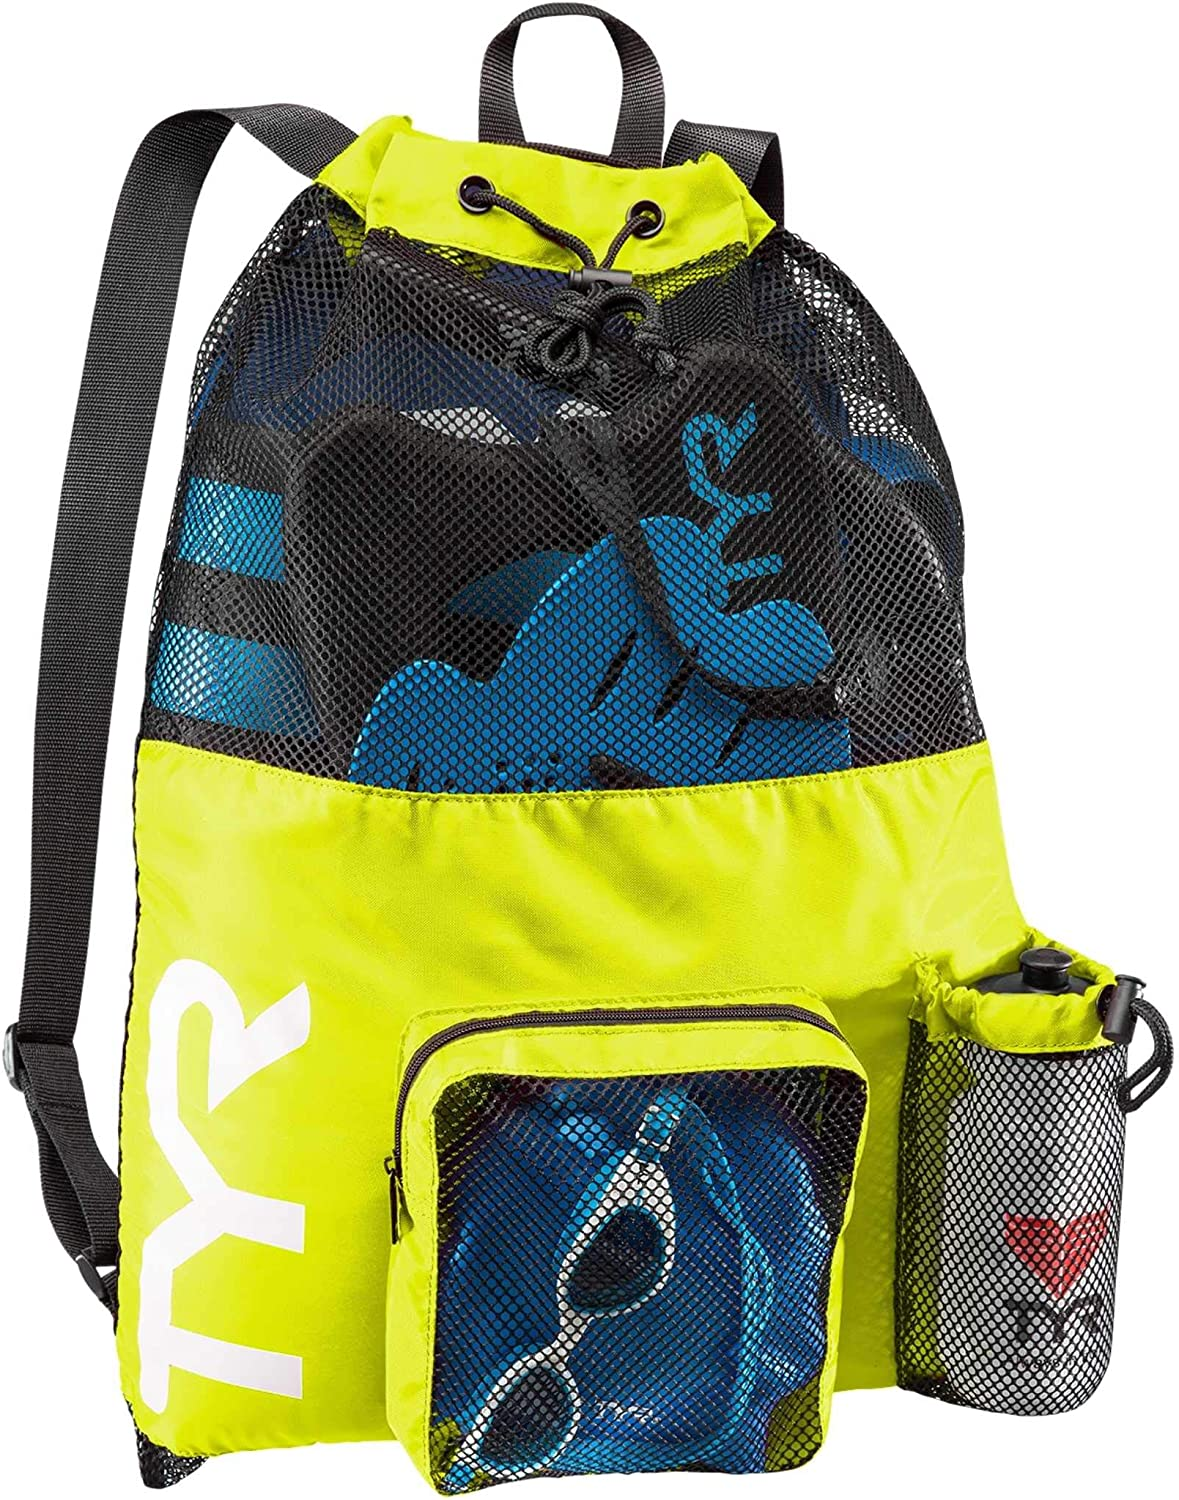 TYR low-pricing Big Mesh Mummy Backpack For Gym Swimming Max 68% OFF G and Wet Workout